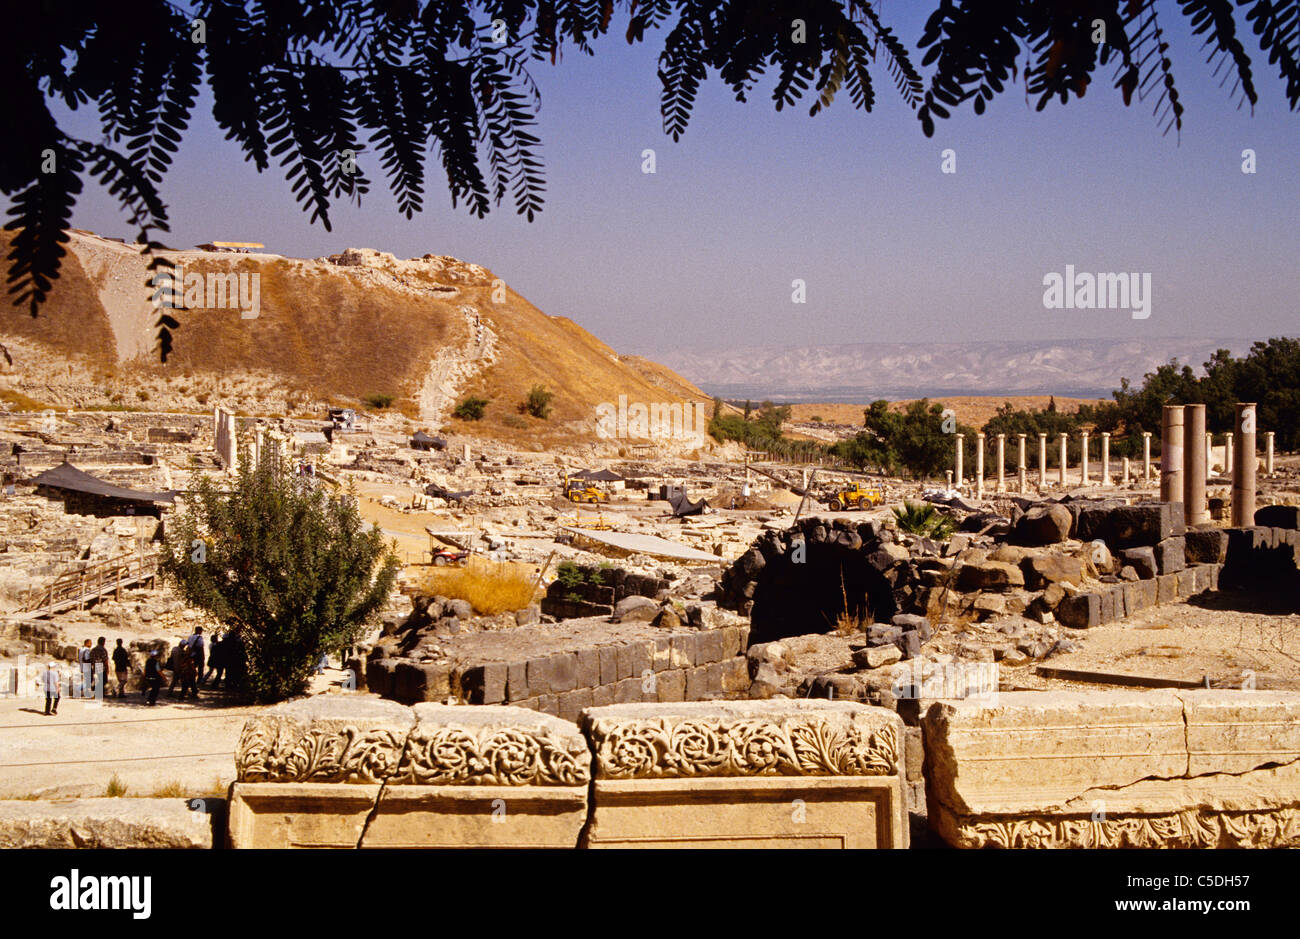 Beit She'an archaeological site, Biblical city in Jordan Valley - Stock Image